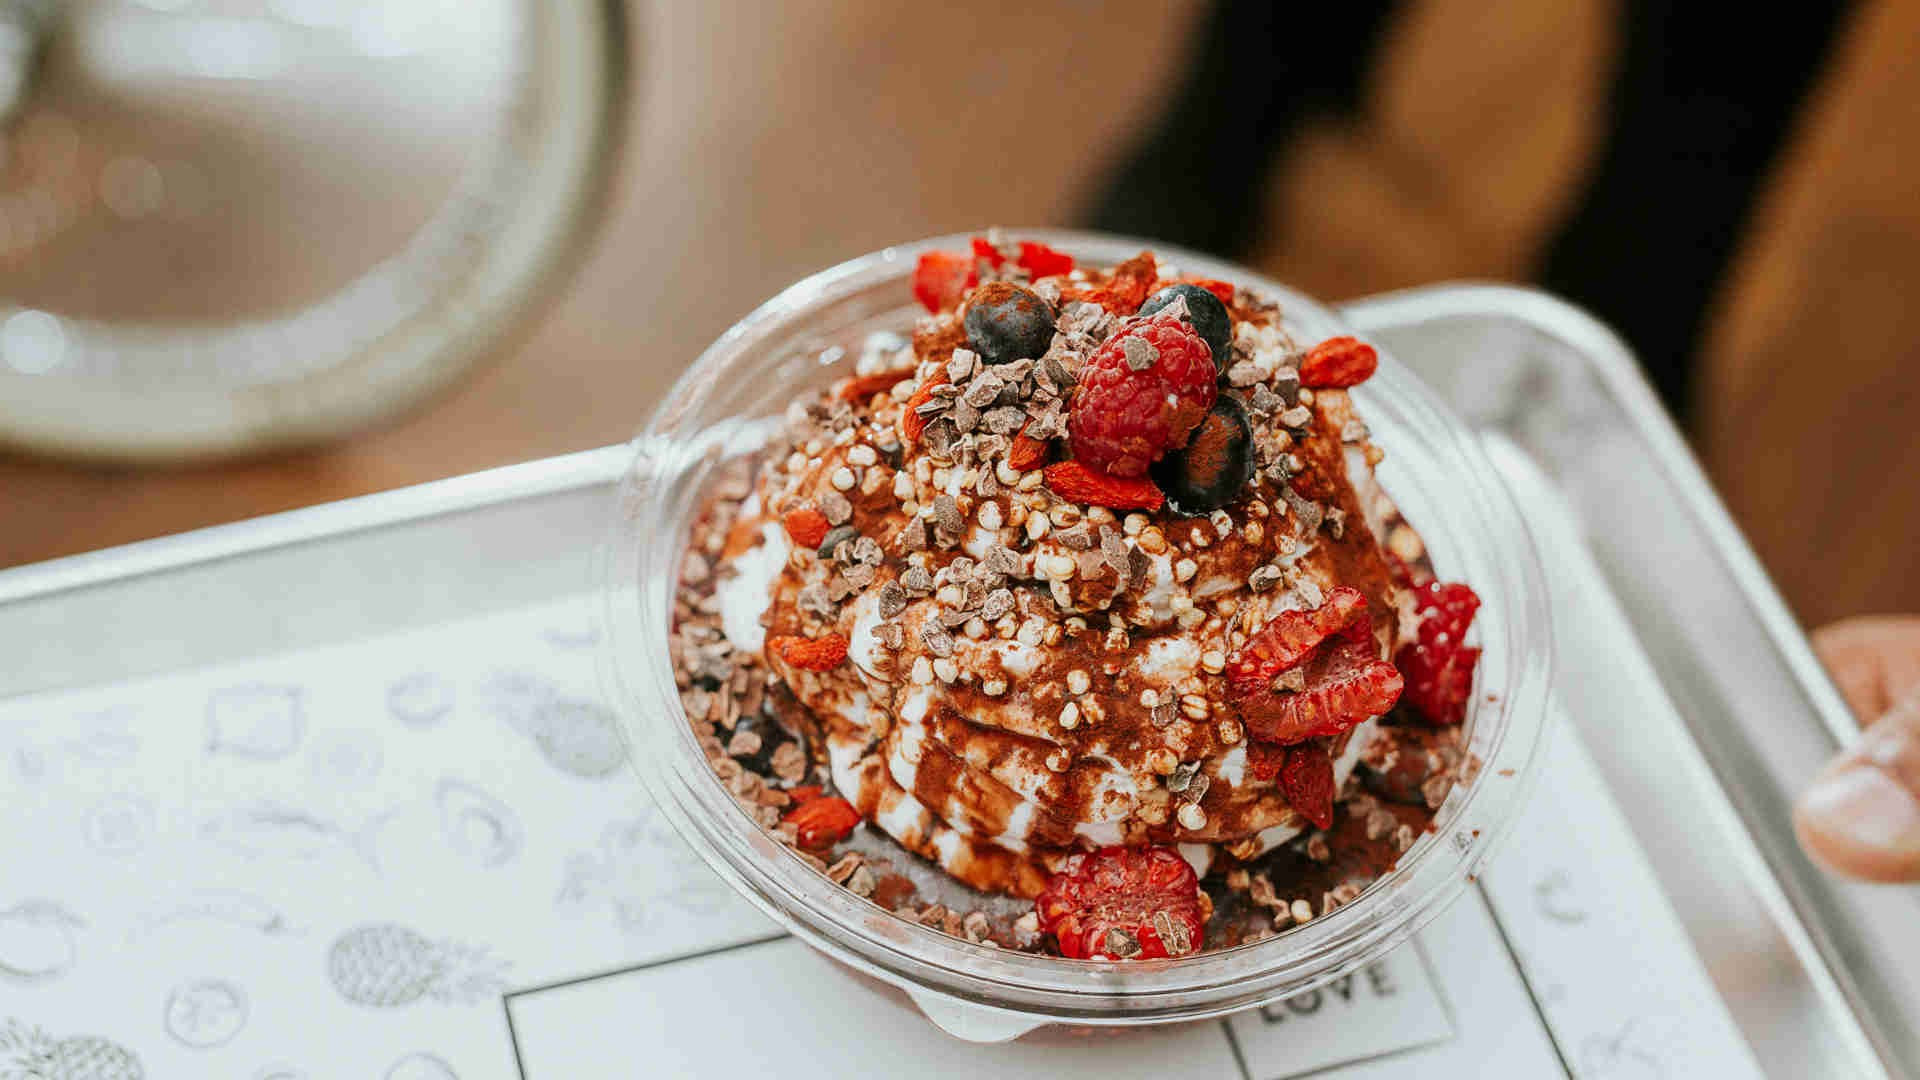 The best restaurants offering delivery and takeout in Toronto: a breakfast bowl at Calii Love